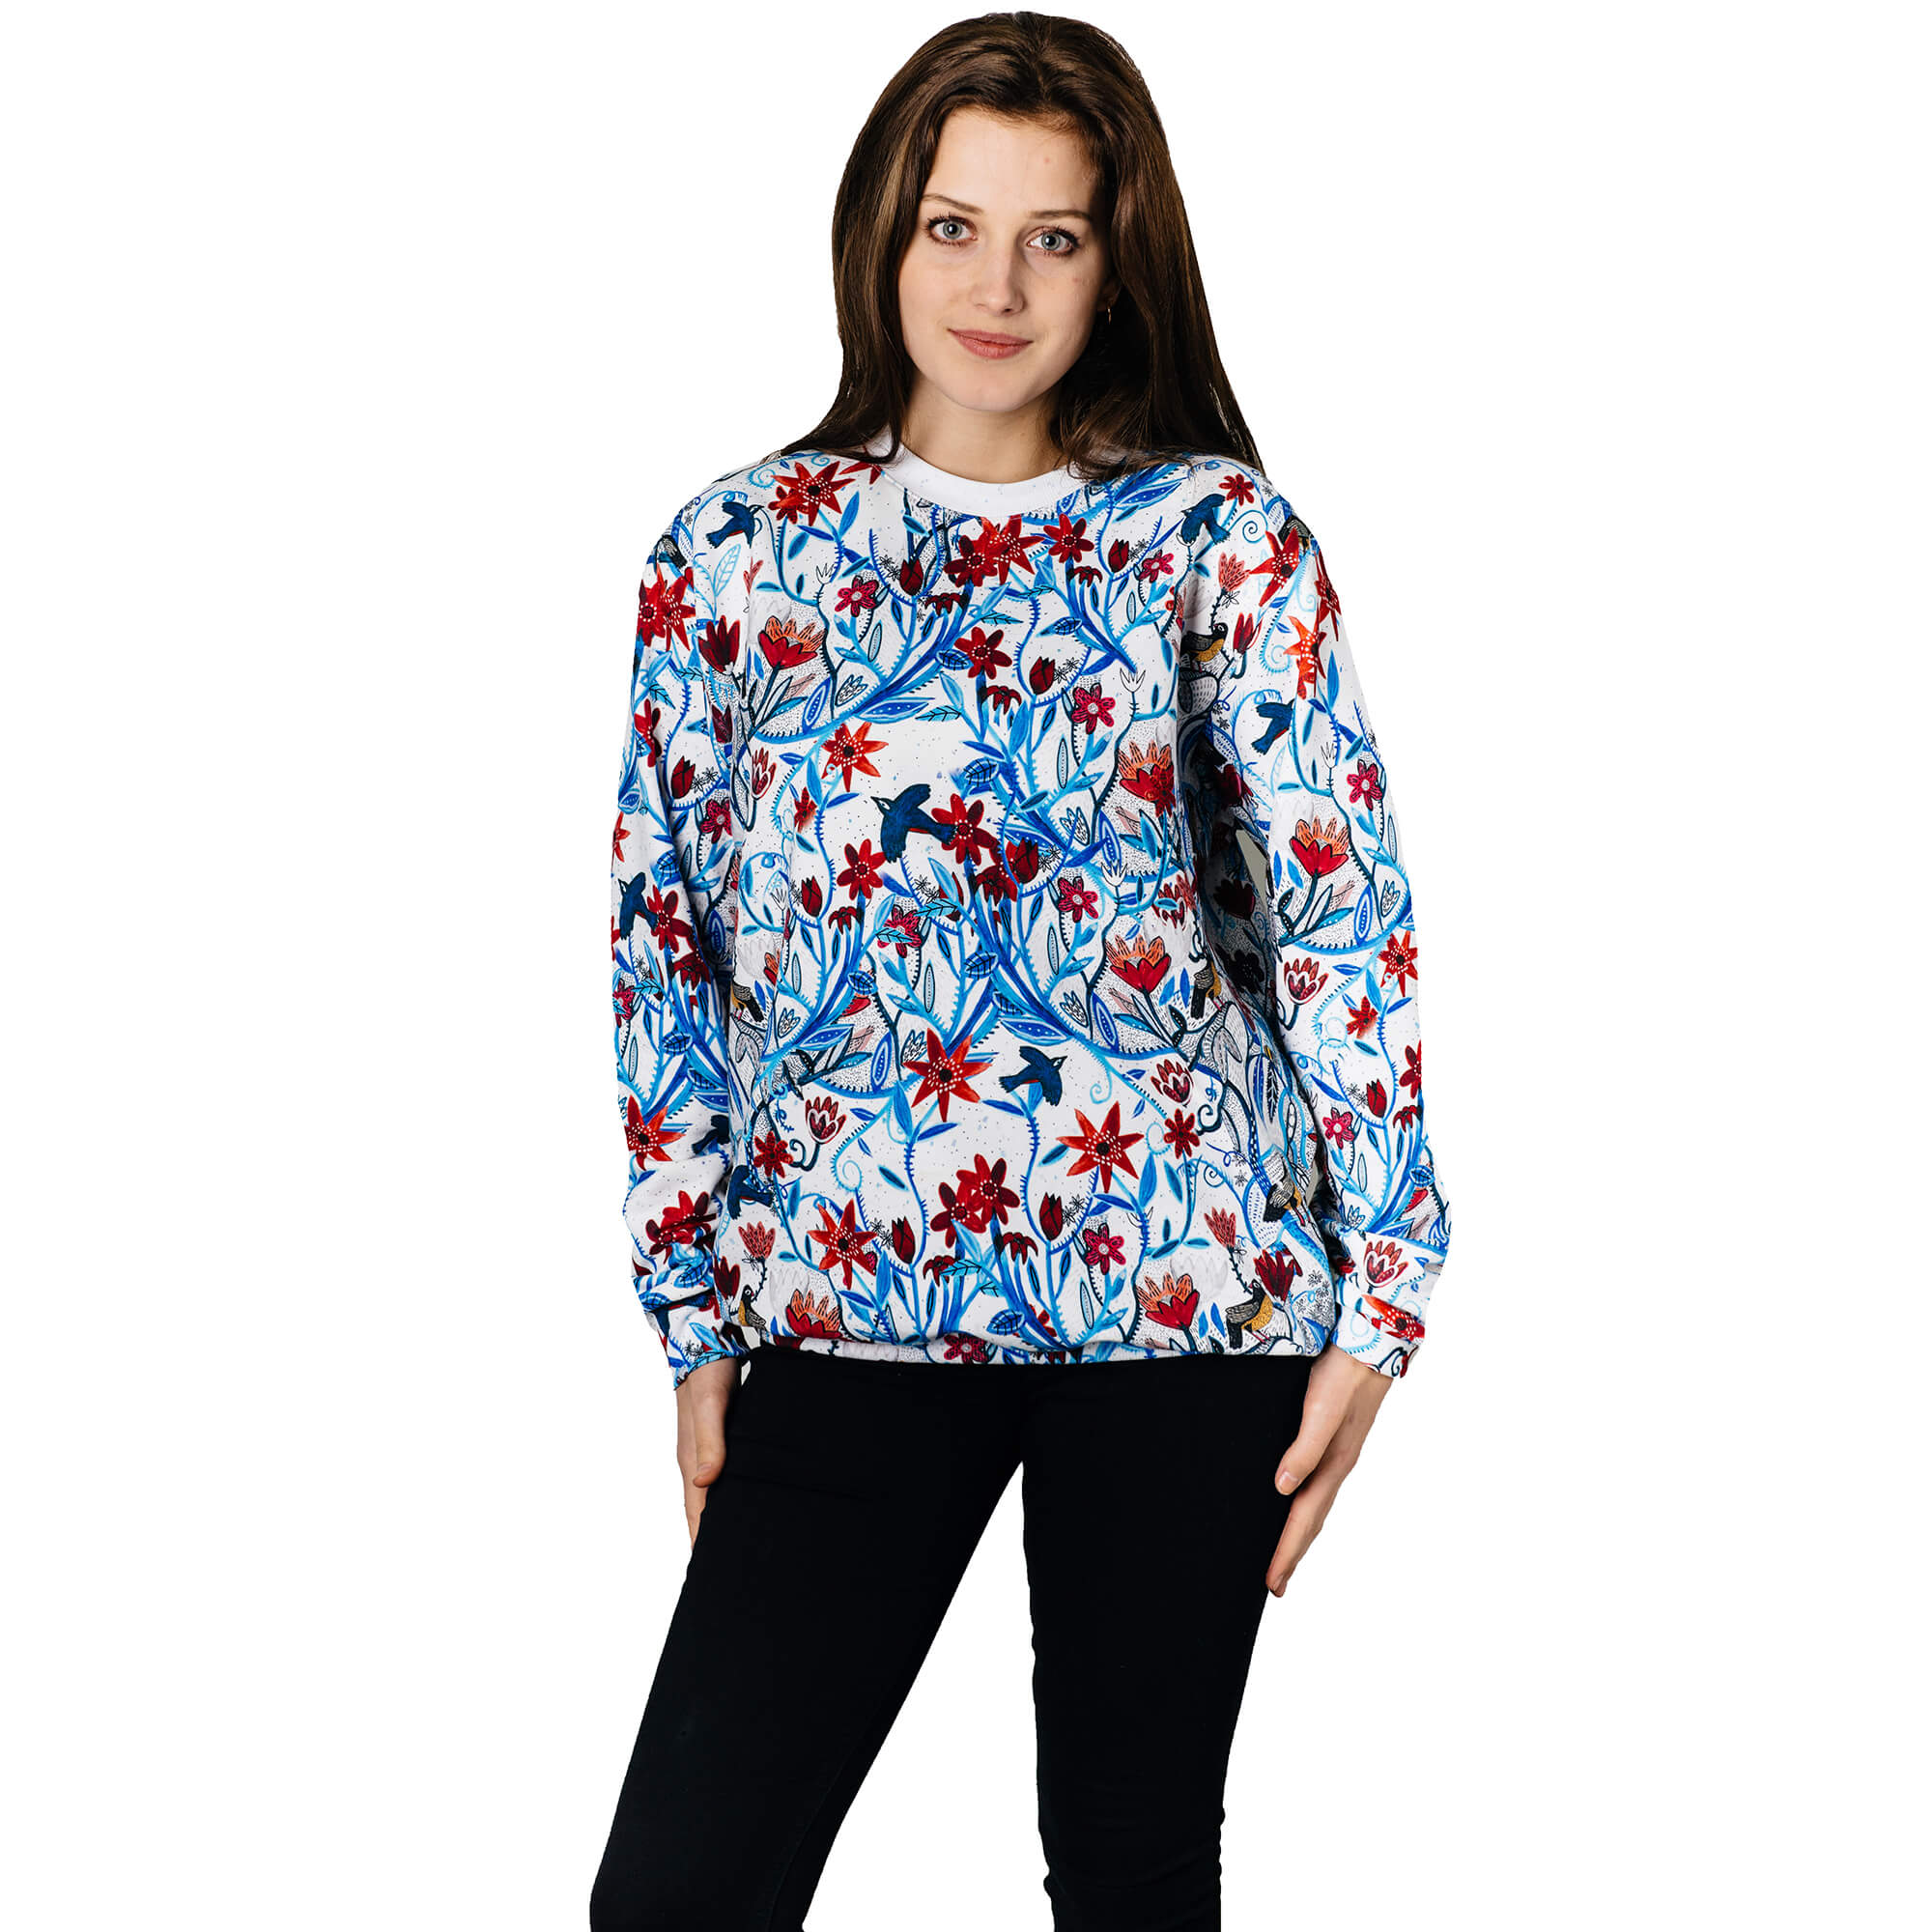 Winter Flowers bluza jumper handmade blue white red Full print art clothes Cacofonia Milano